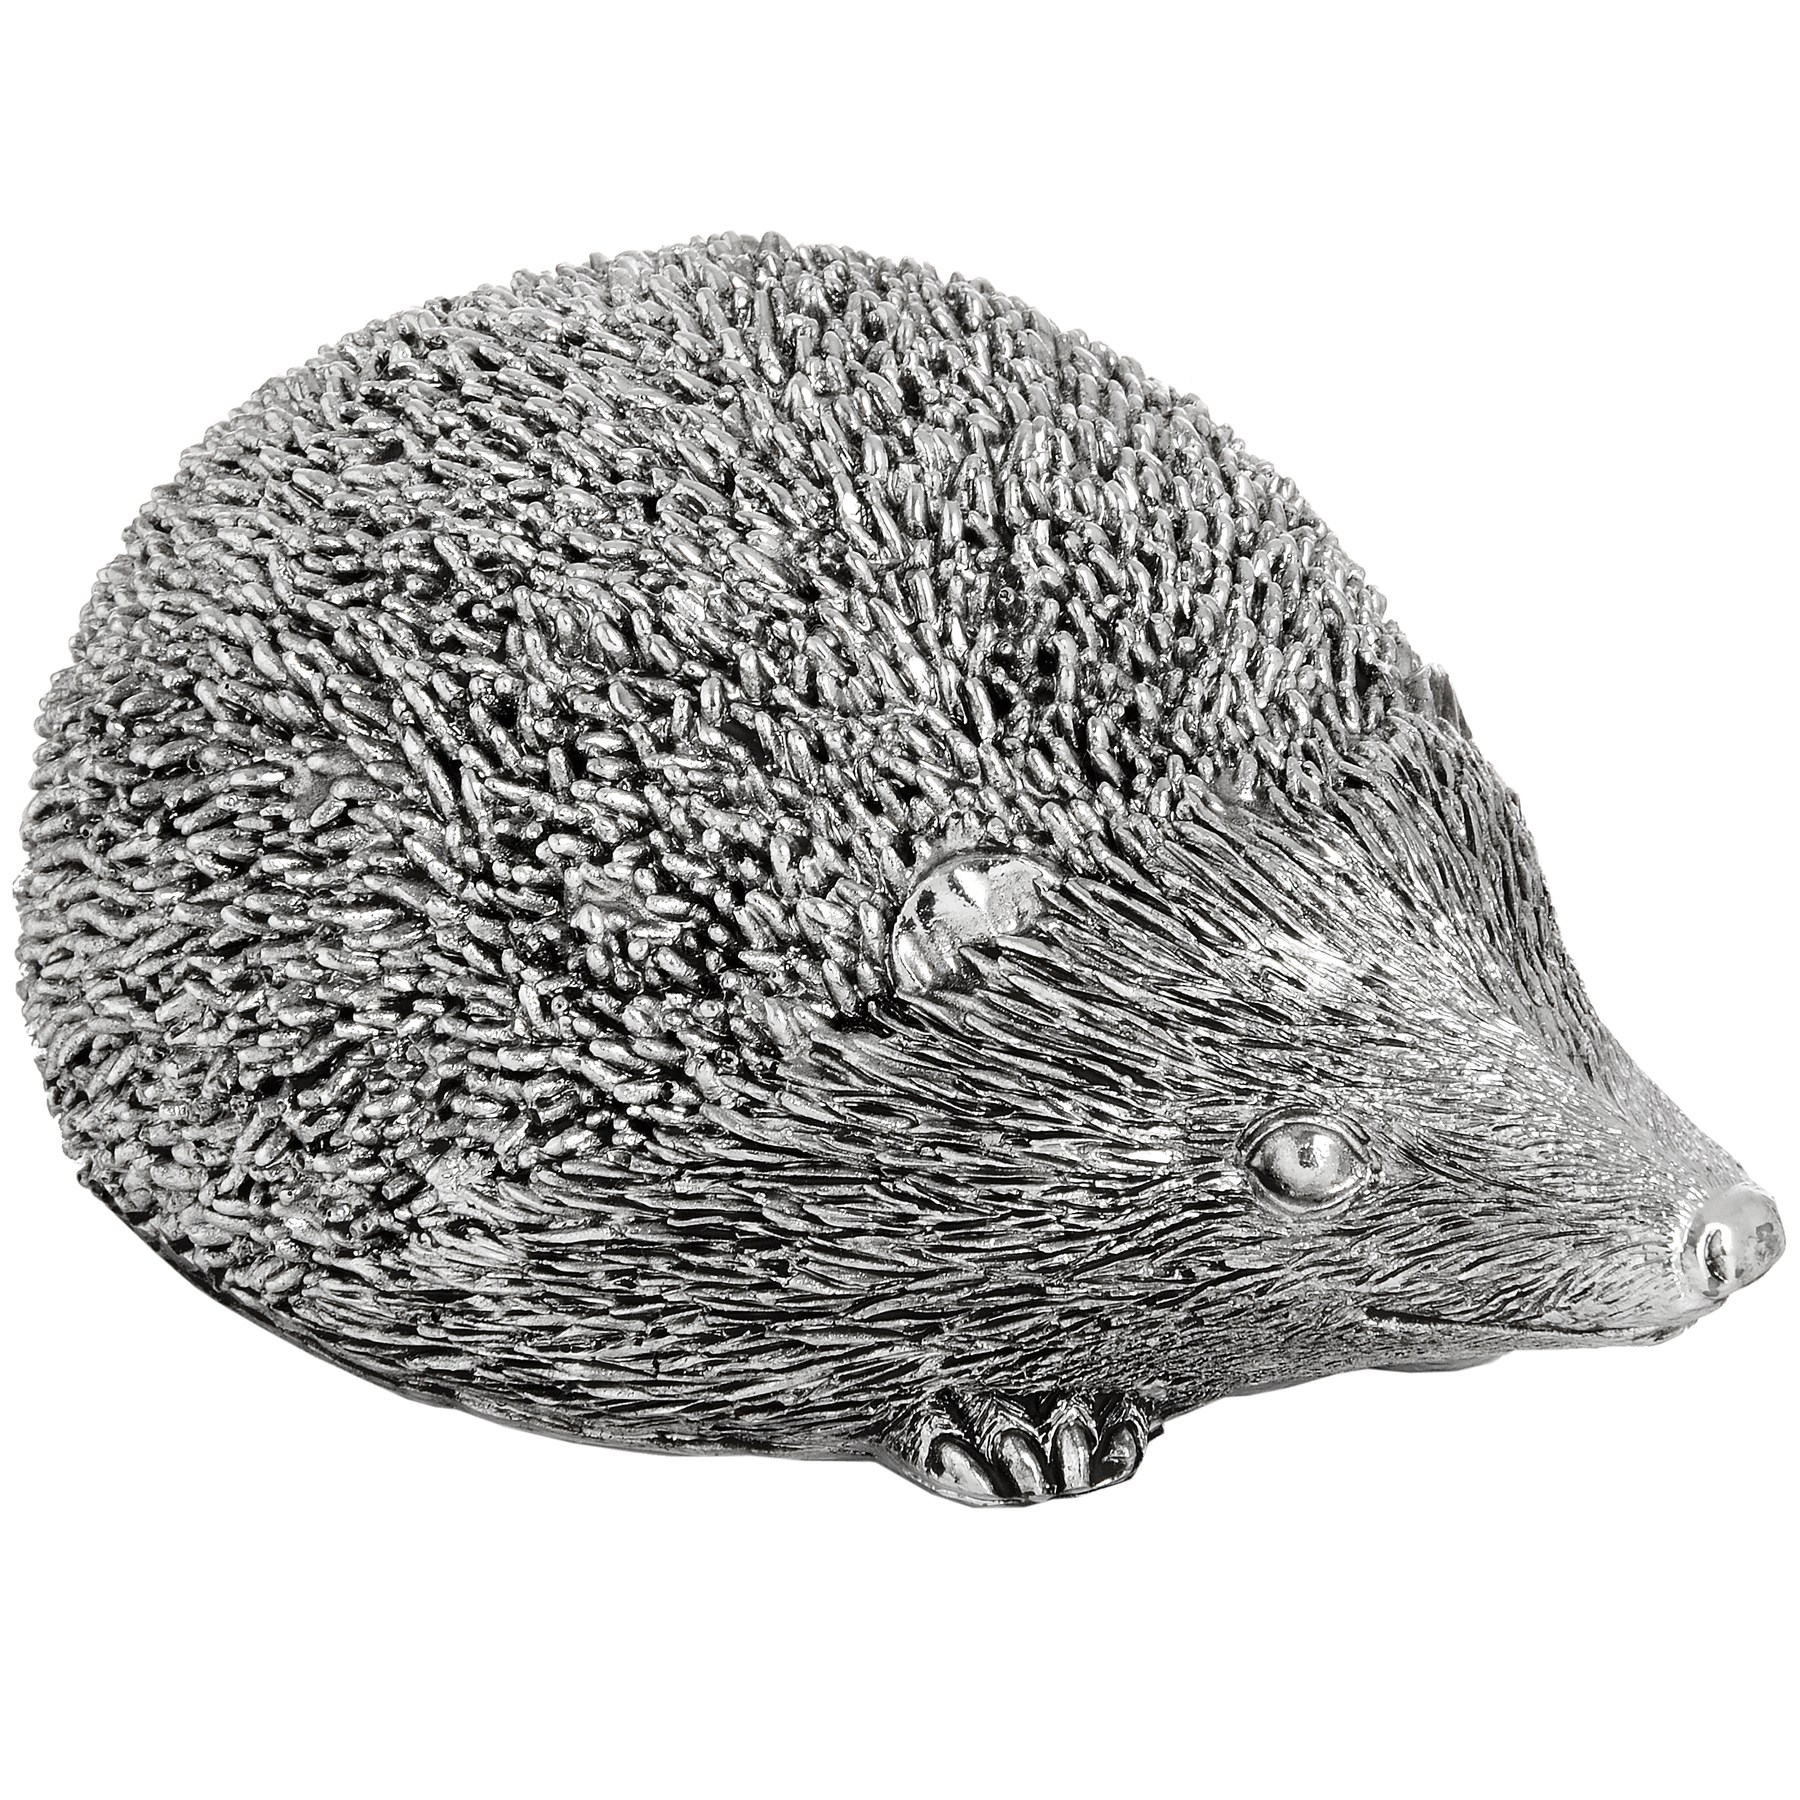 Large Silver Hedgehog HI020